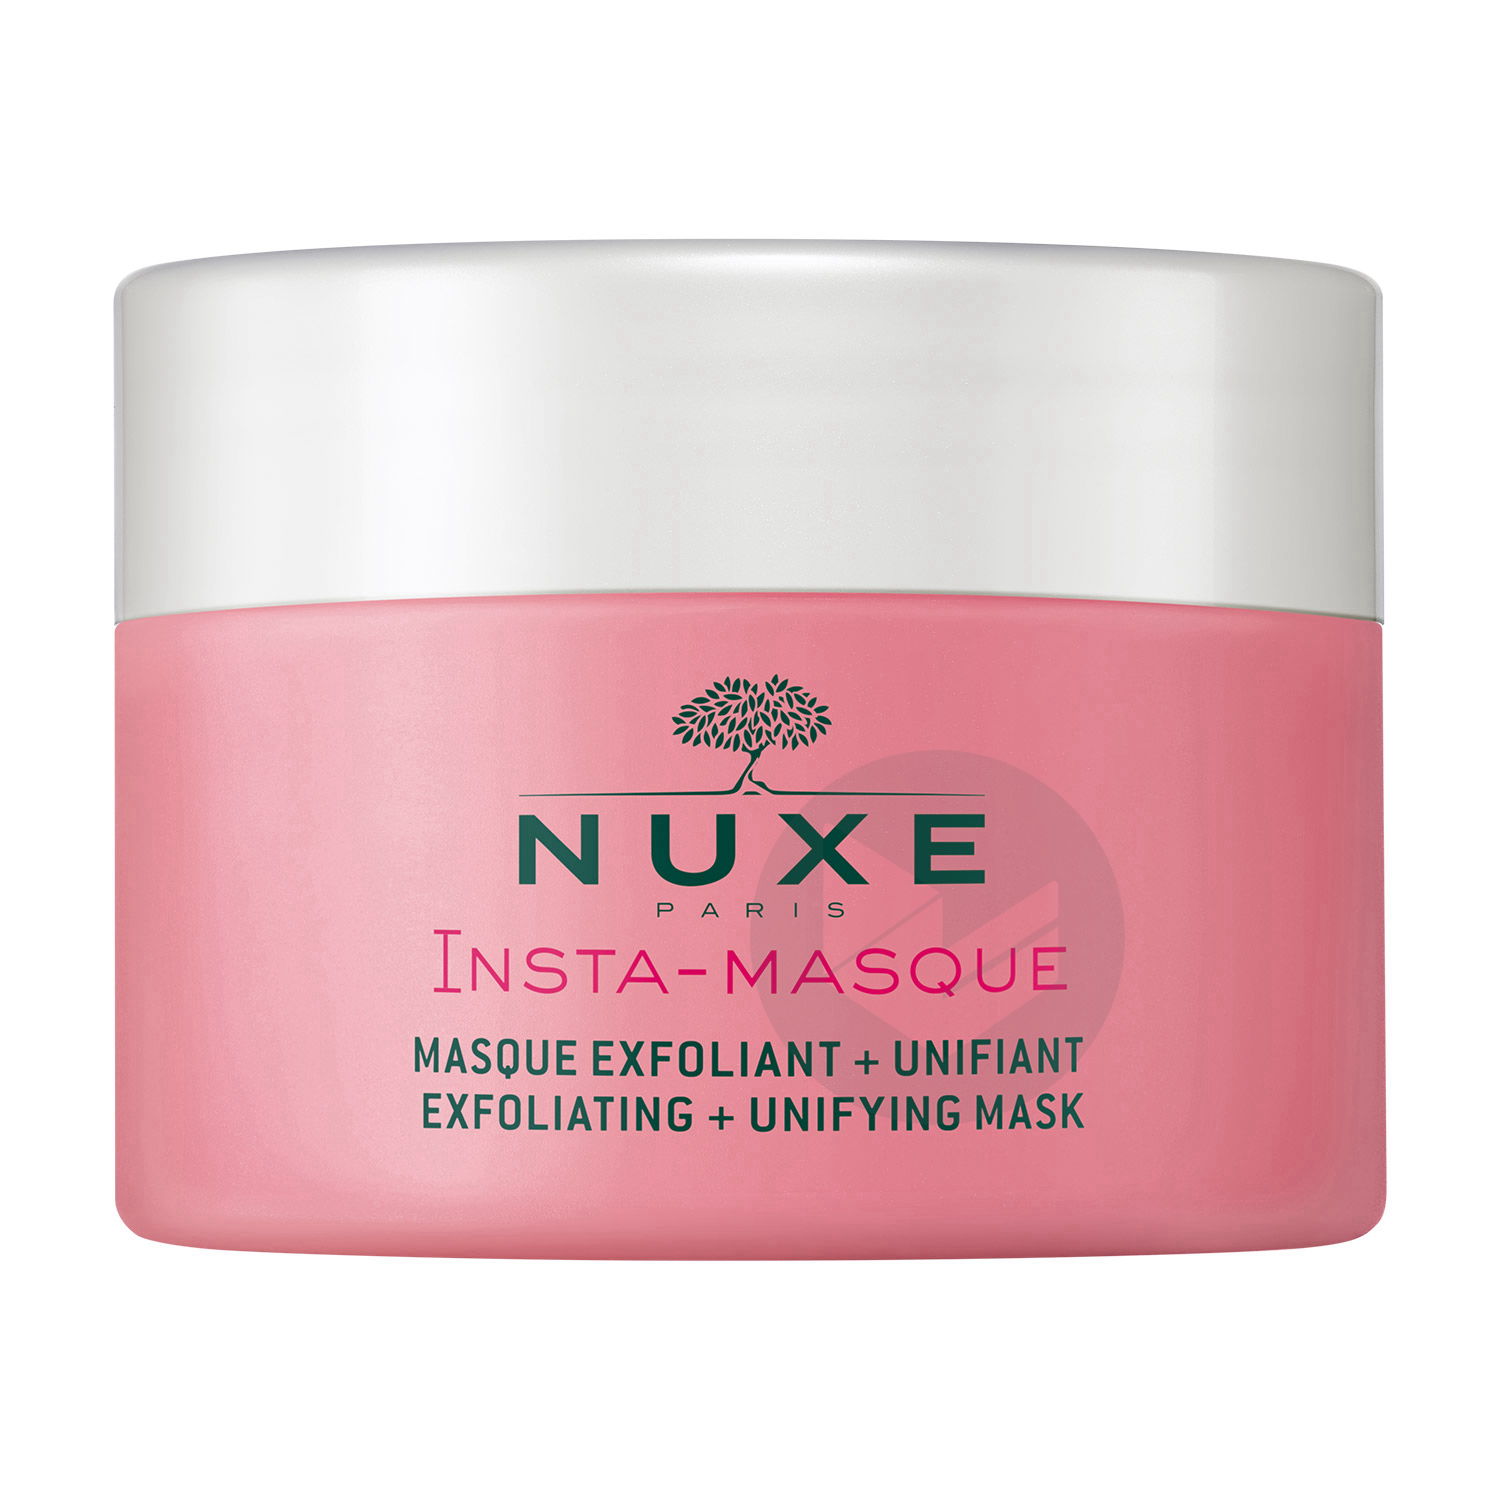 Insta Masque Masque Exfoliant Unifiant